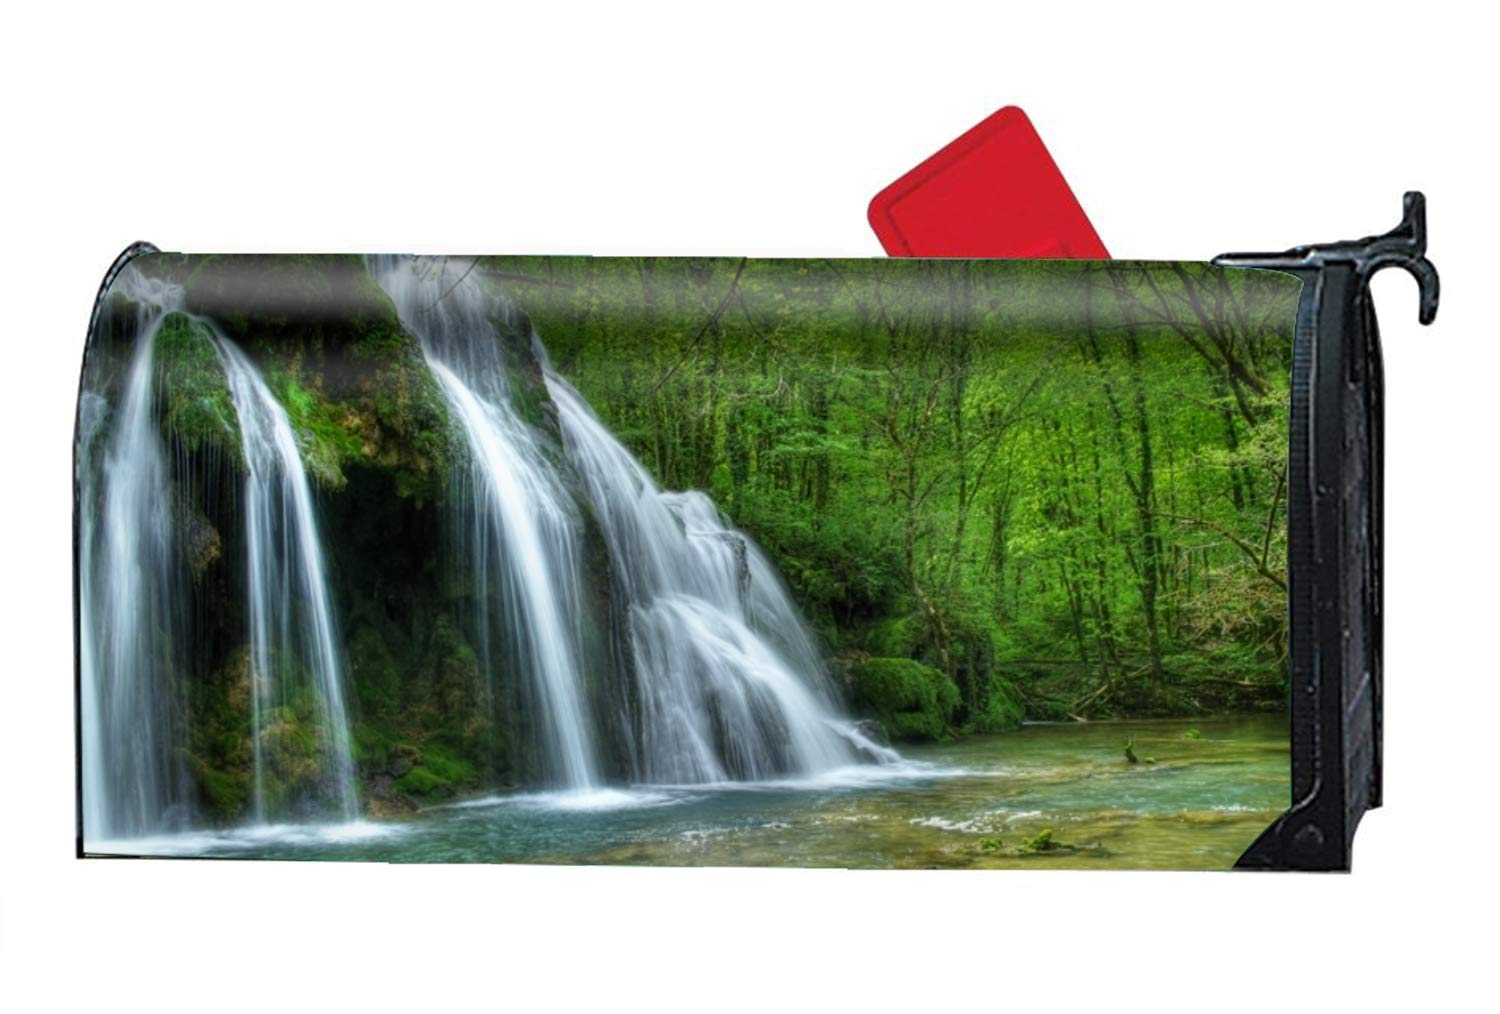 FunnyLife Waterfall by The Trees Mailbox Makeover - Seasonal Magnetic Cover by FunnyLife (Image #1)